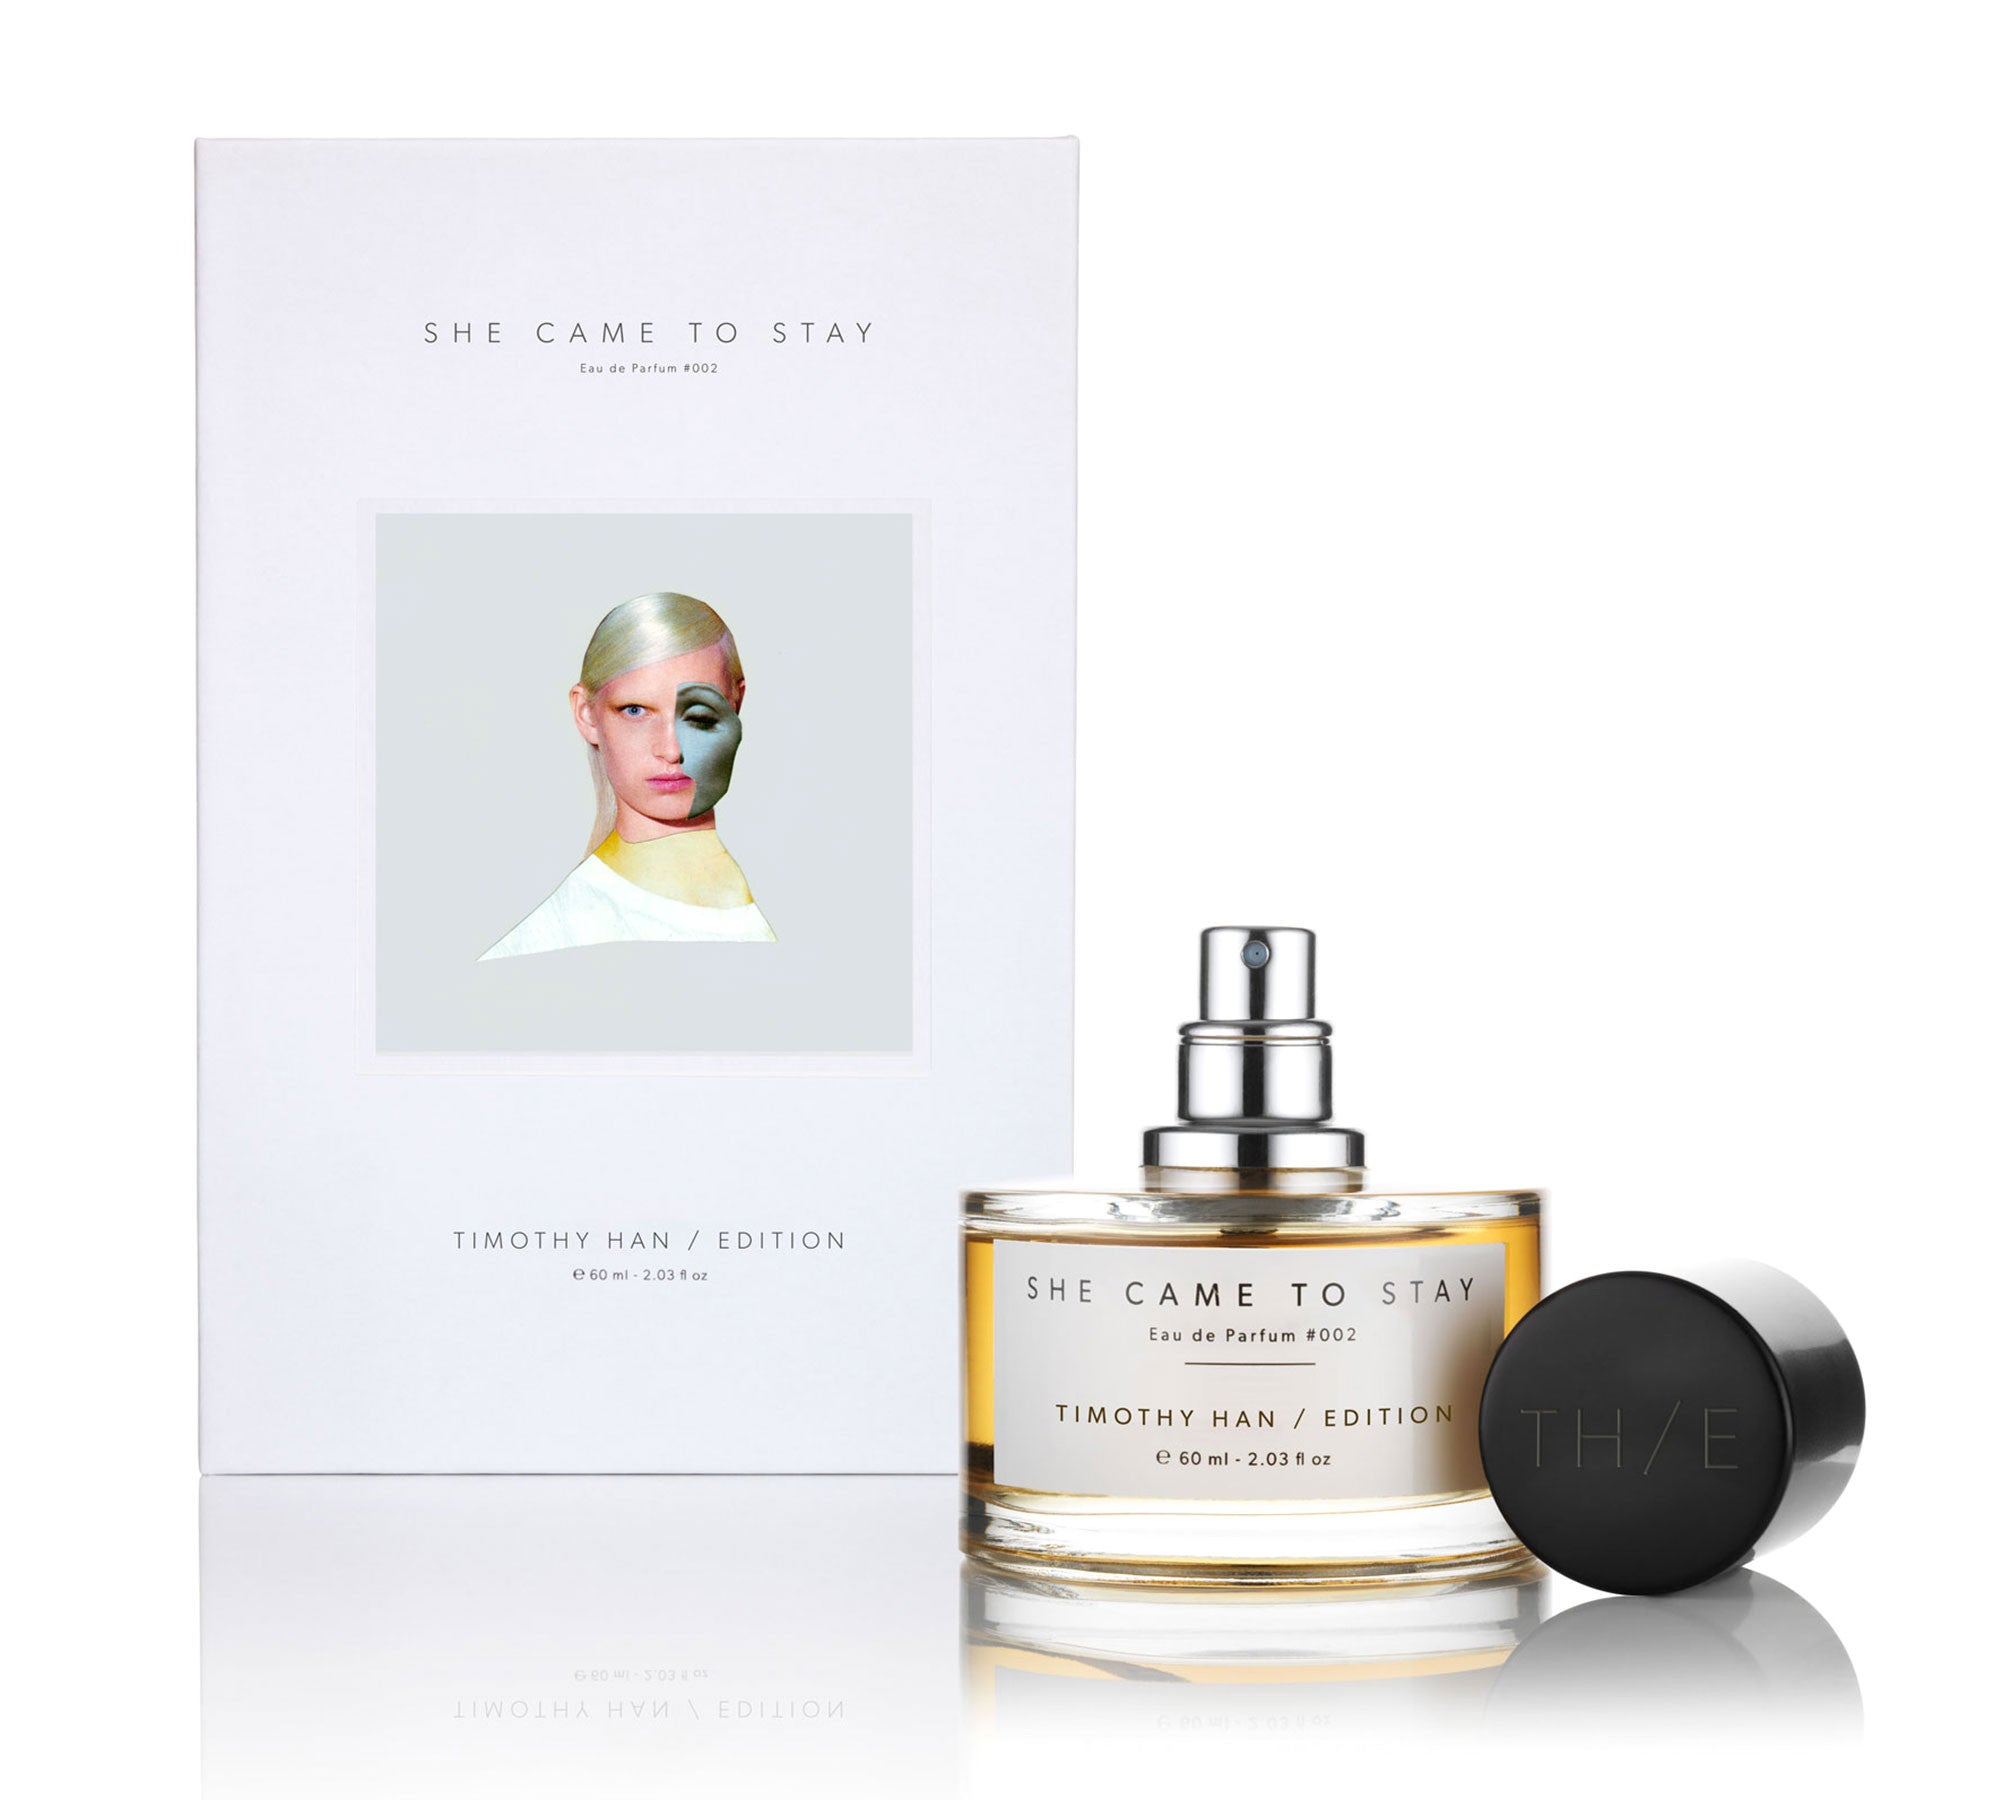 She Came to Stay - Eau de Parfum